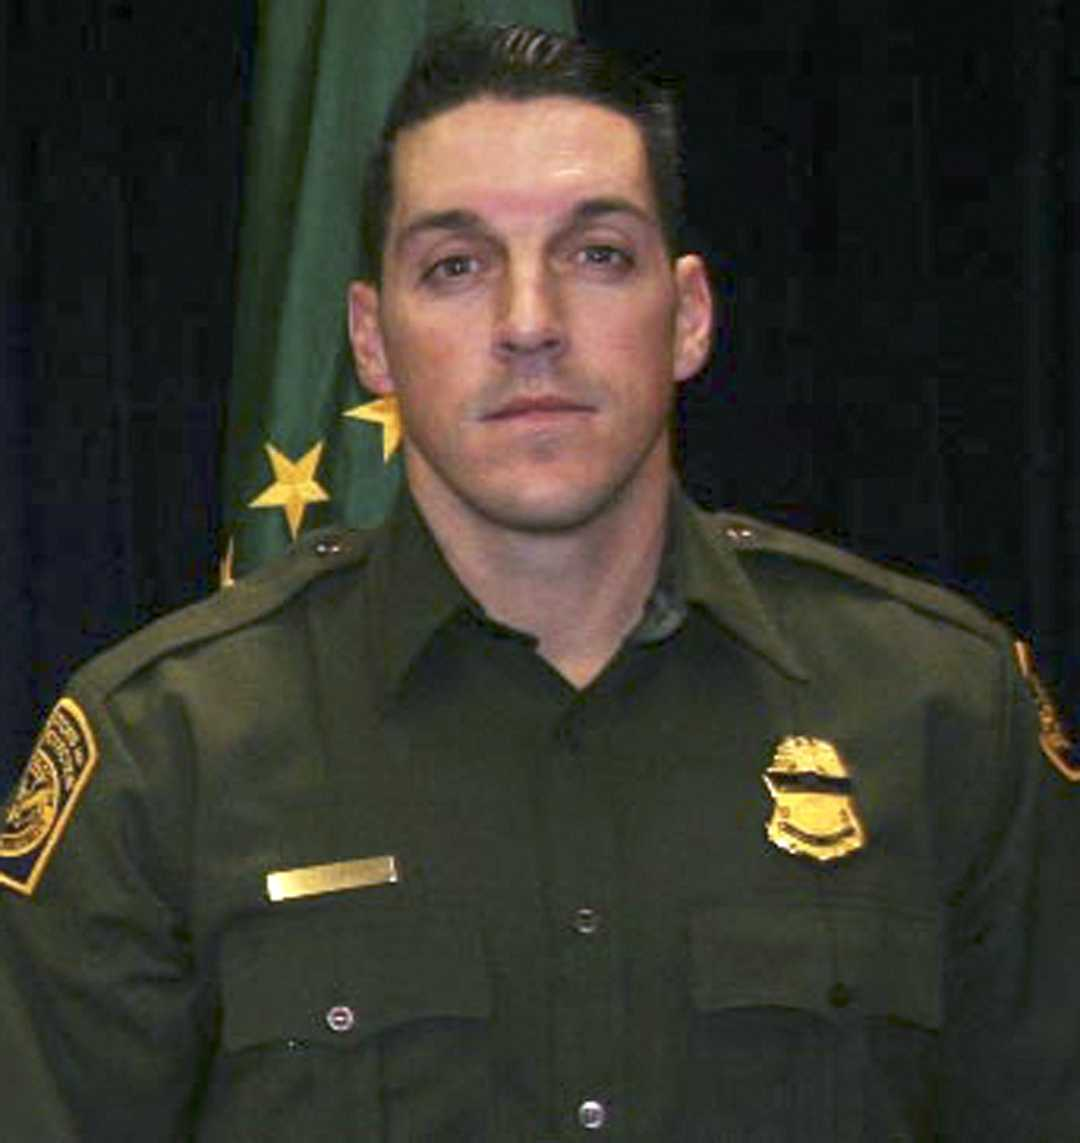 Man convicted in border agent Brian Terry's murder, brought attention to 'Fast & Furious'